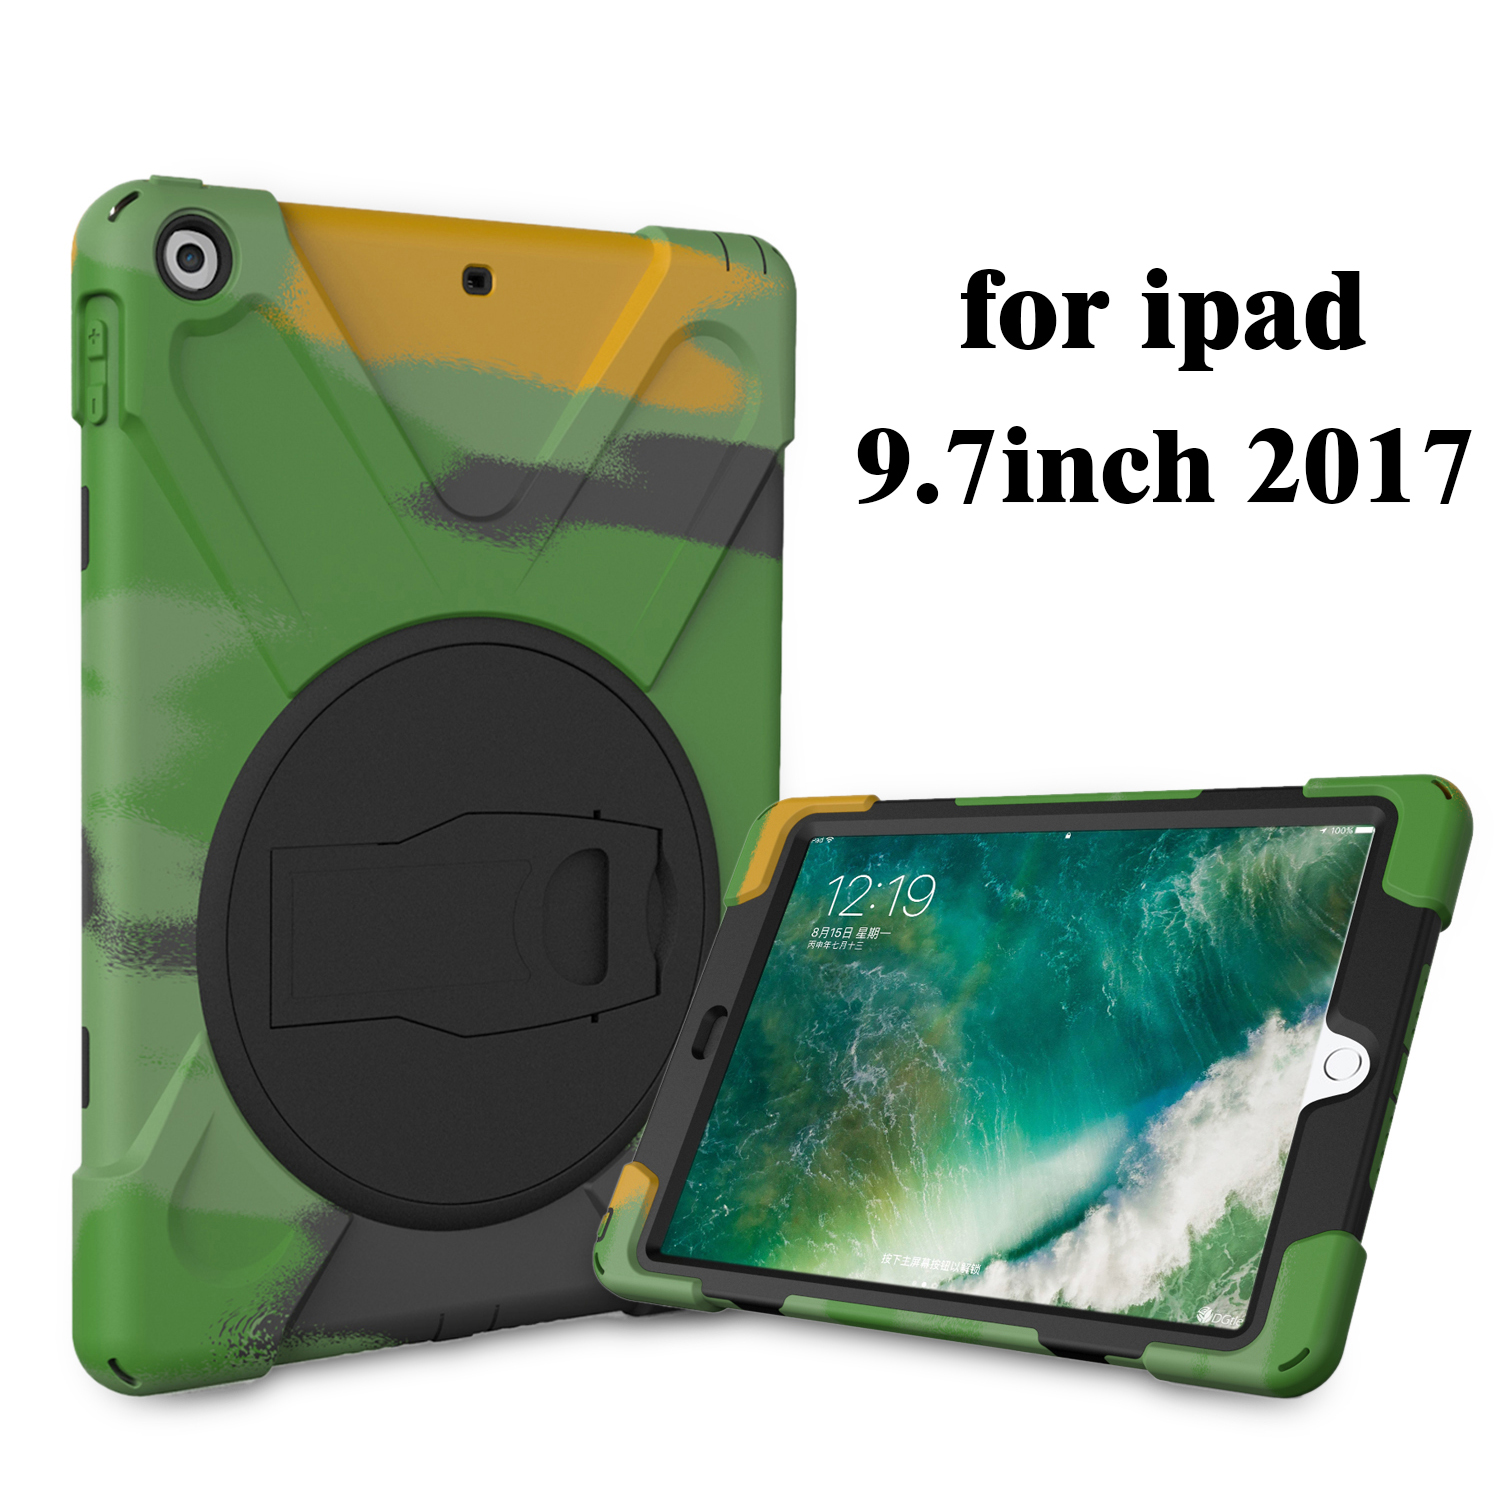 Army Camo Camouflage Pattern Back Cover for iPad 9.7 , Hard Plastic +Soft TPU Armor Protective Case For iPad 2017/2018 Release tiebao tiebao b1285 recreational cycling shoes black green size 42